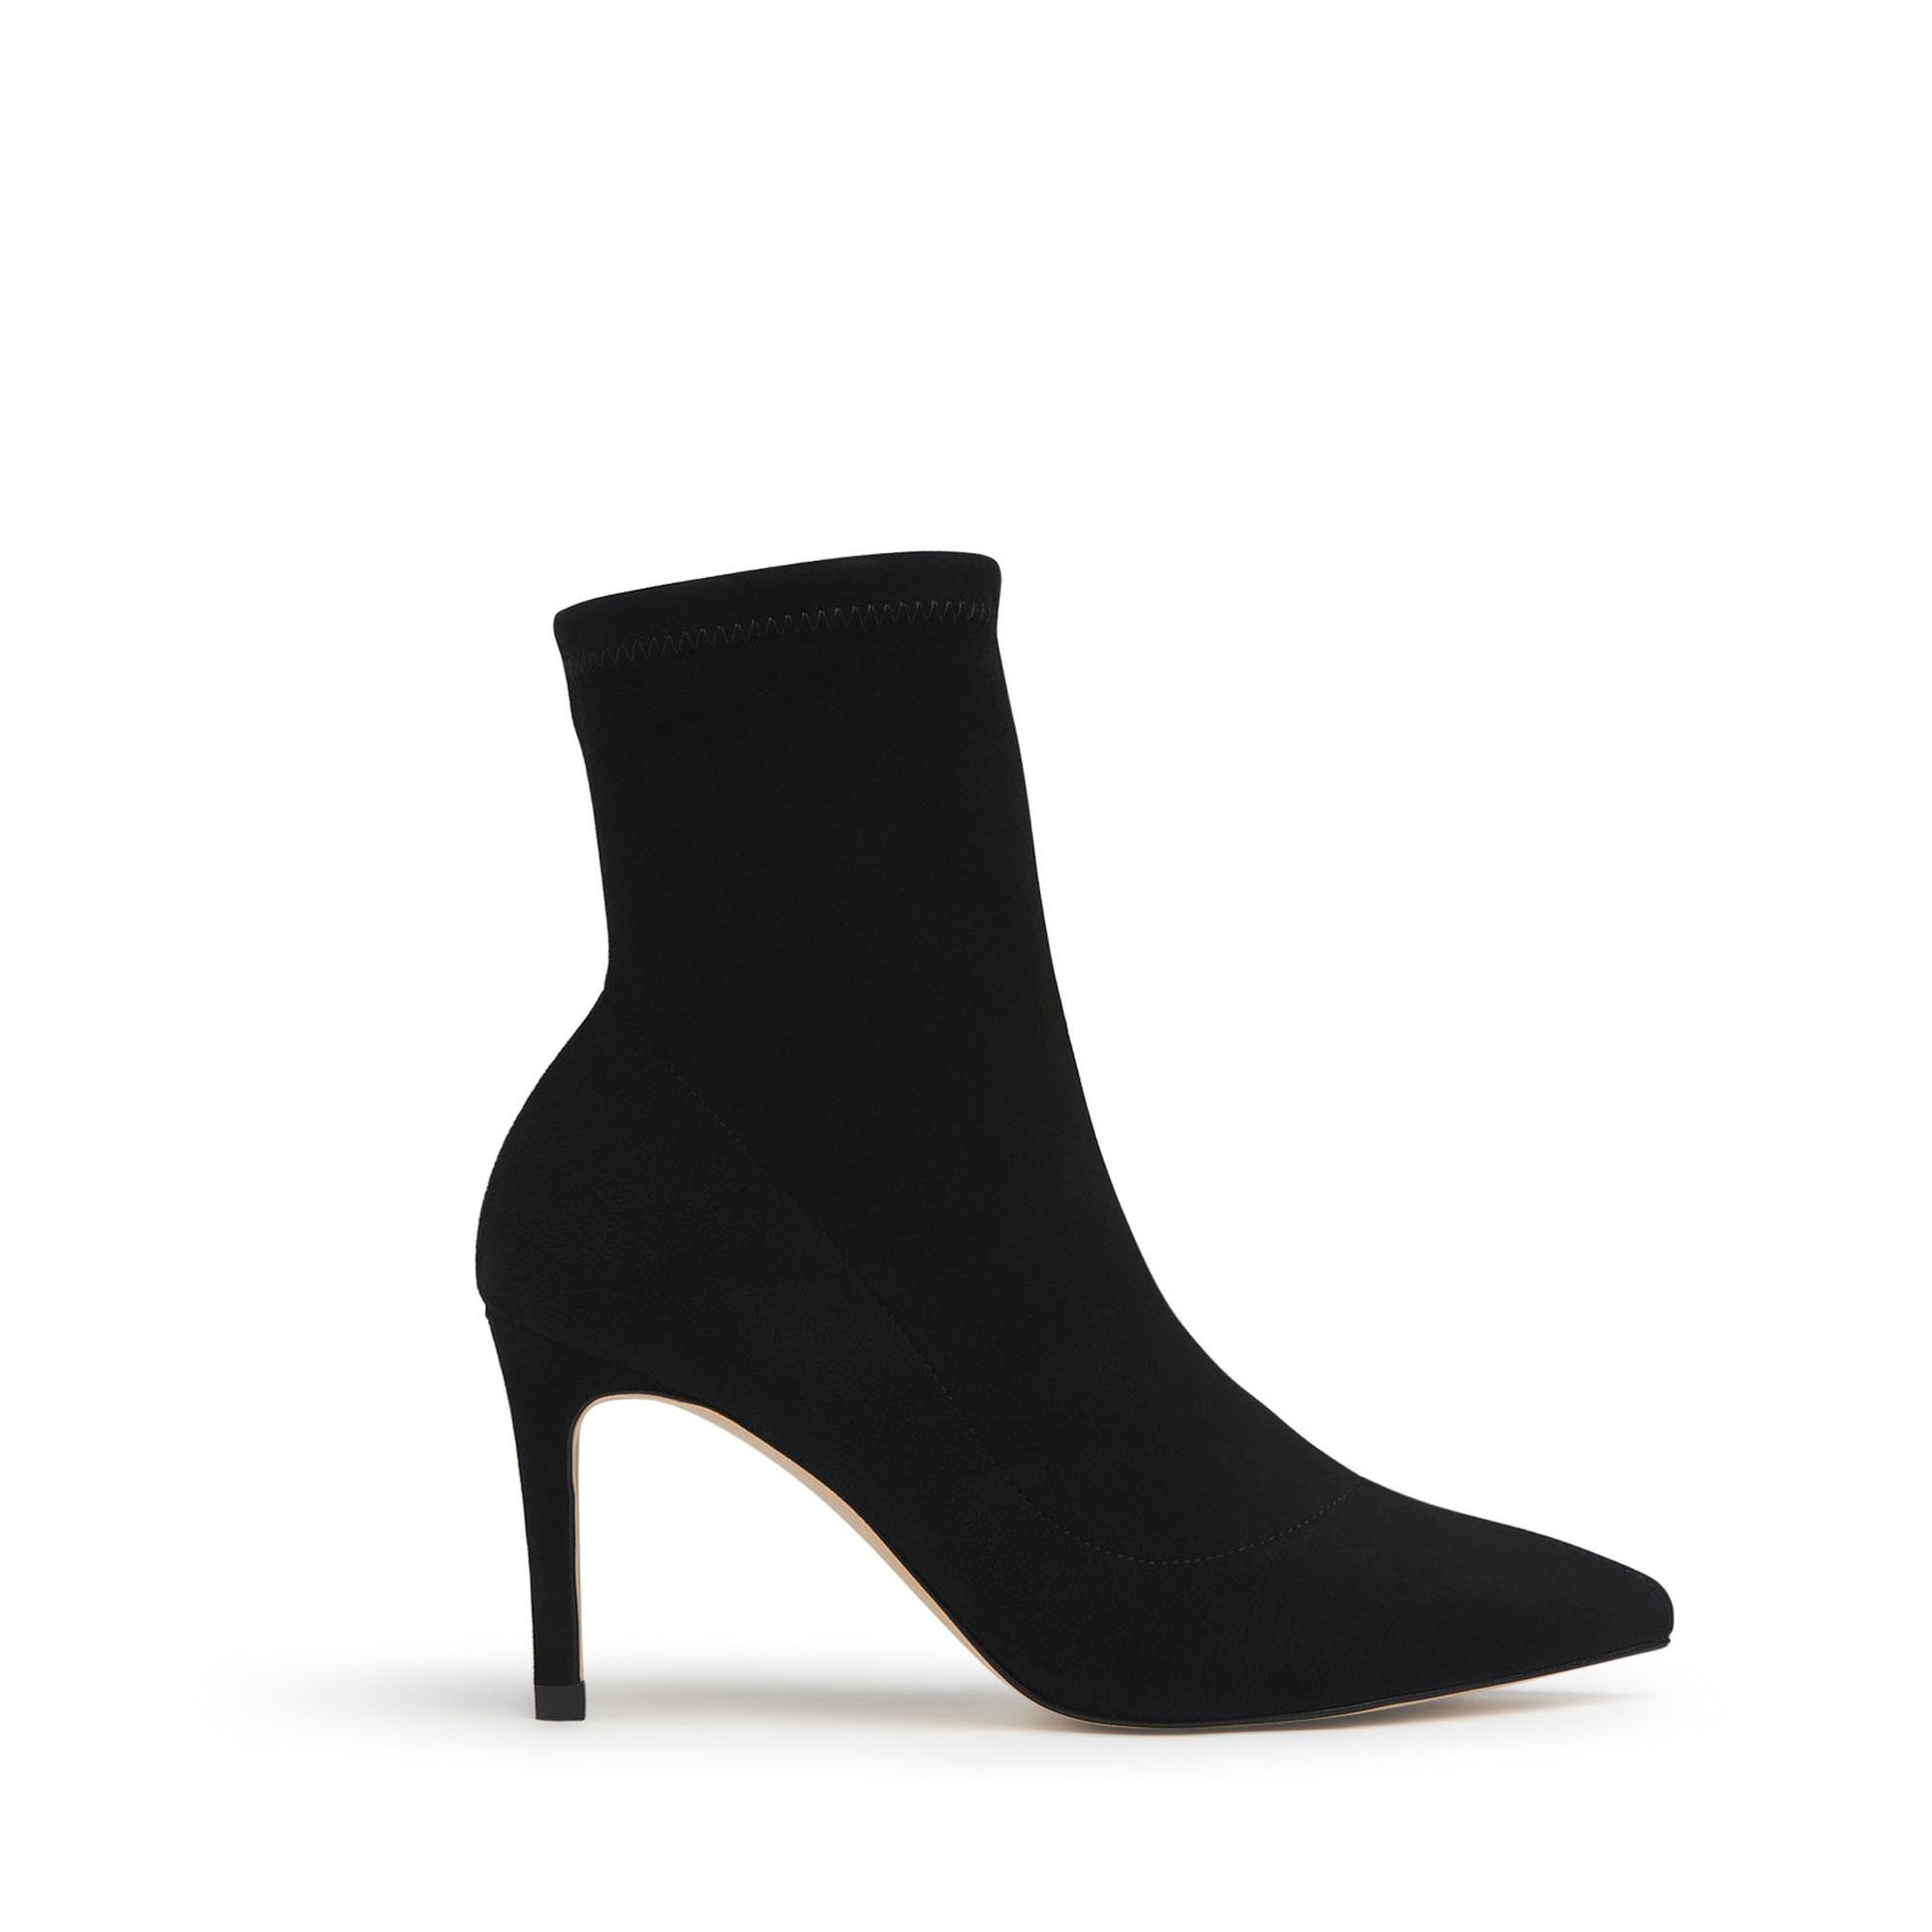 Allie Suede Ankle Boots